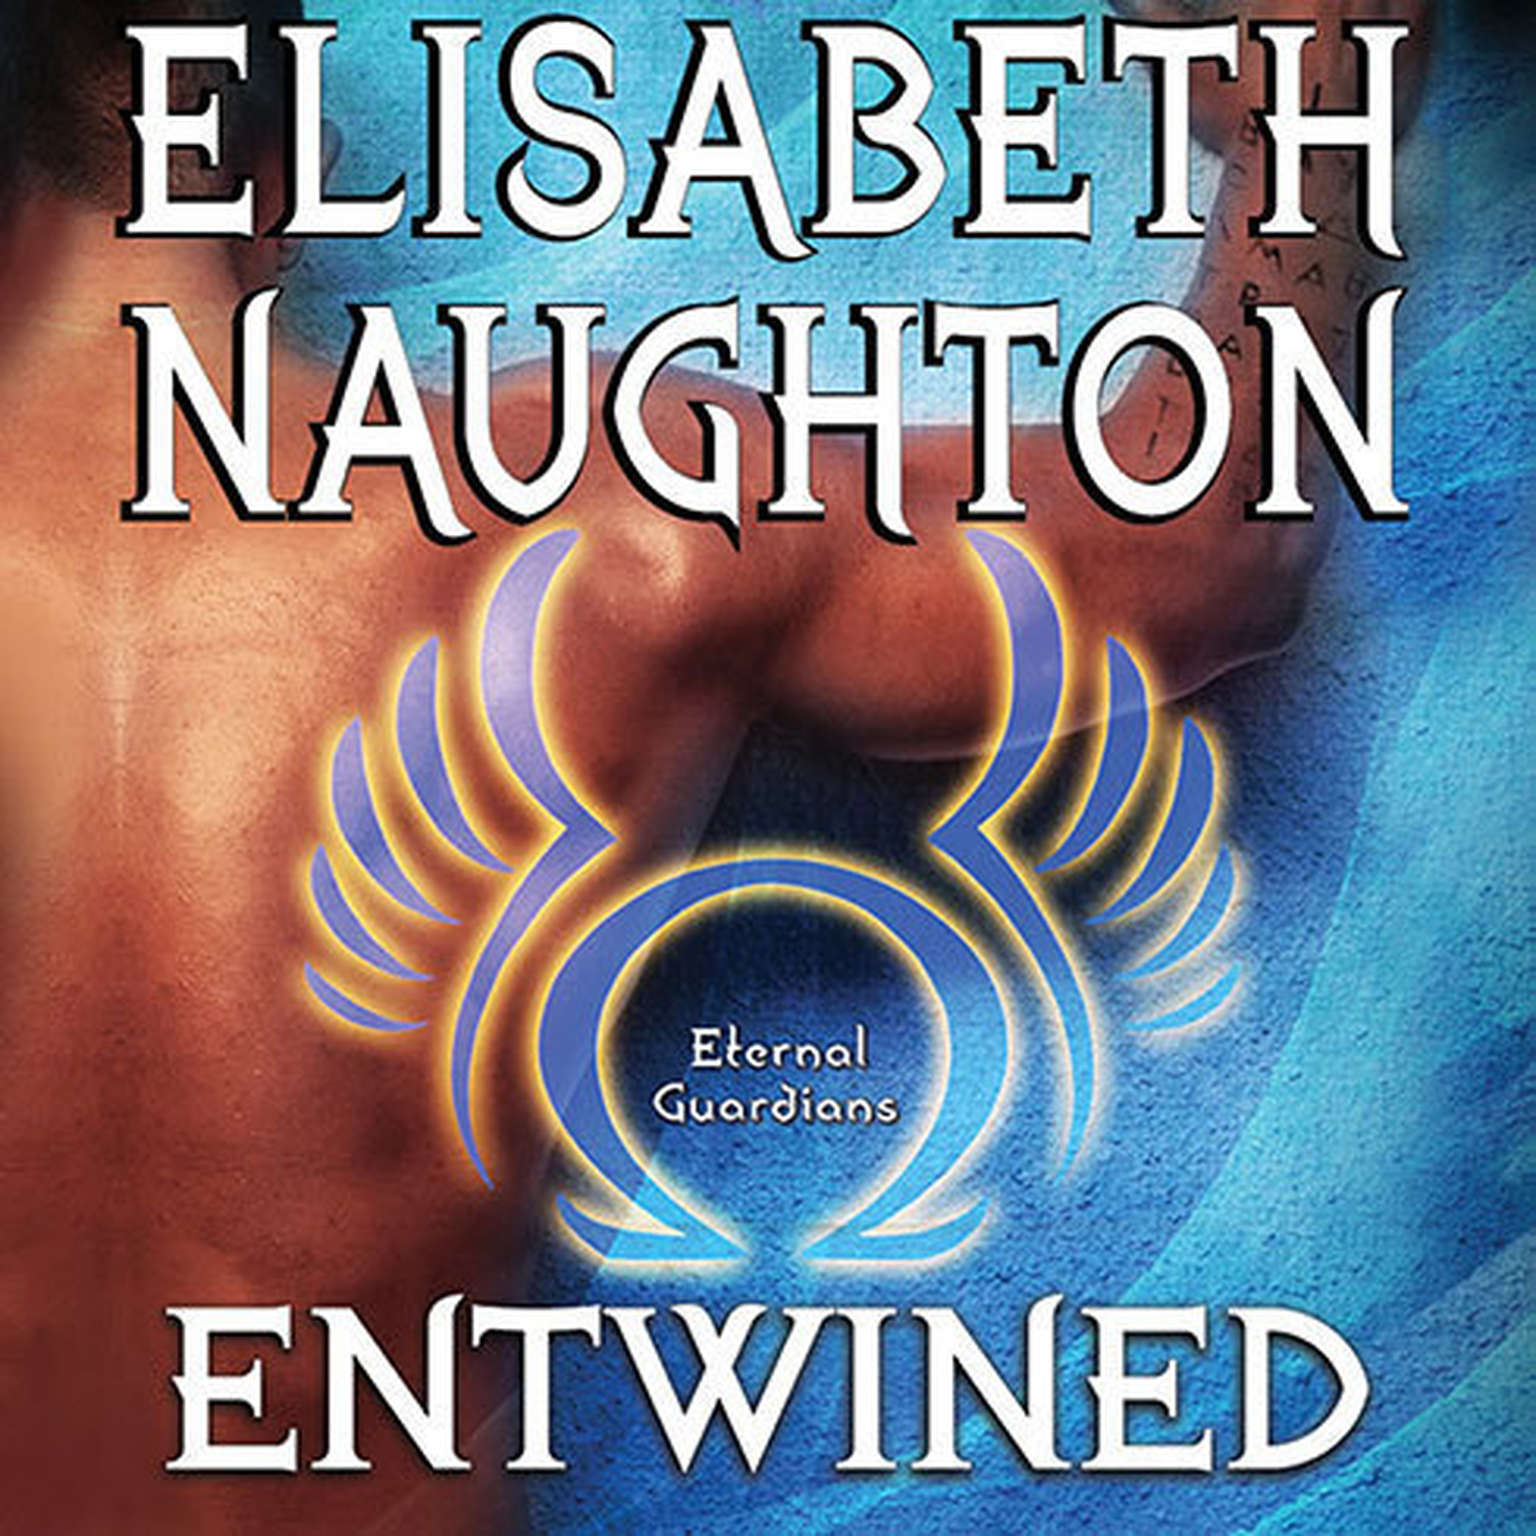 Printable Entwined Audiobook Cover Art